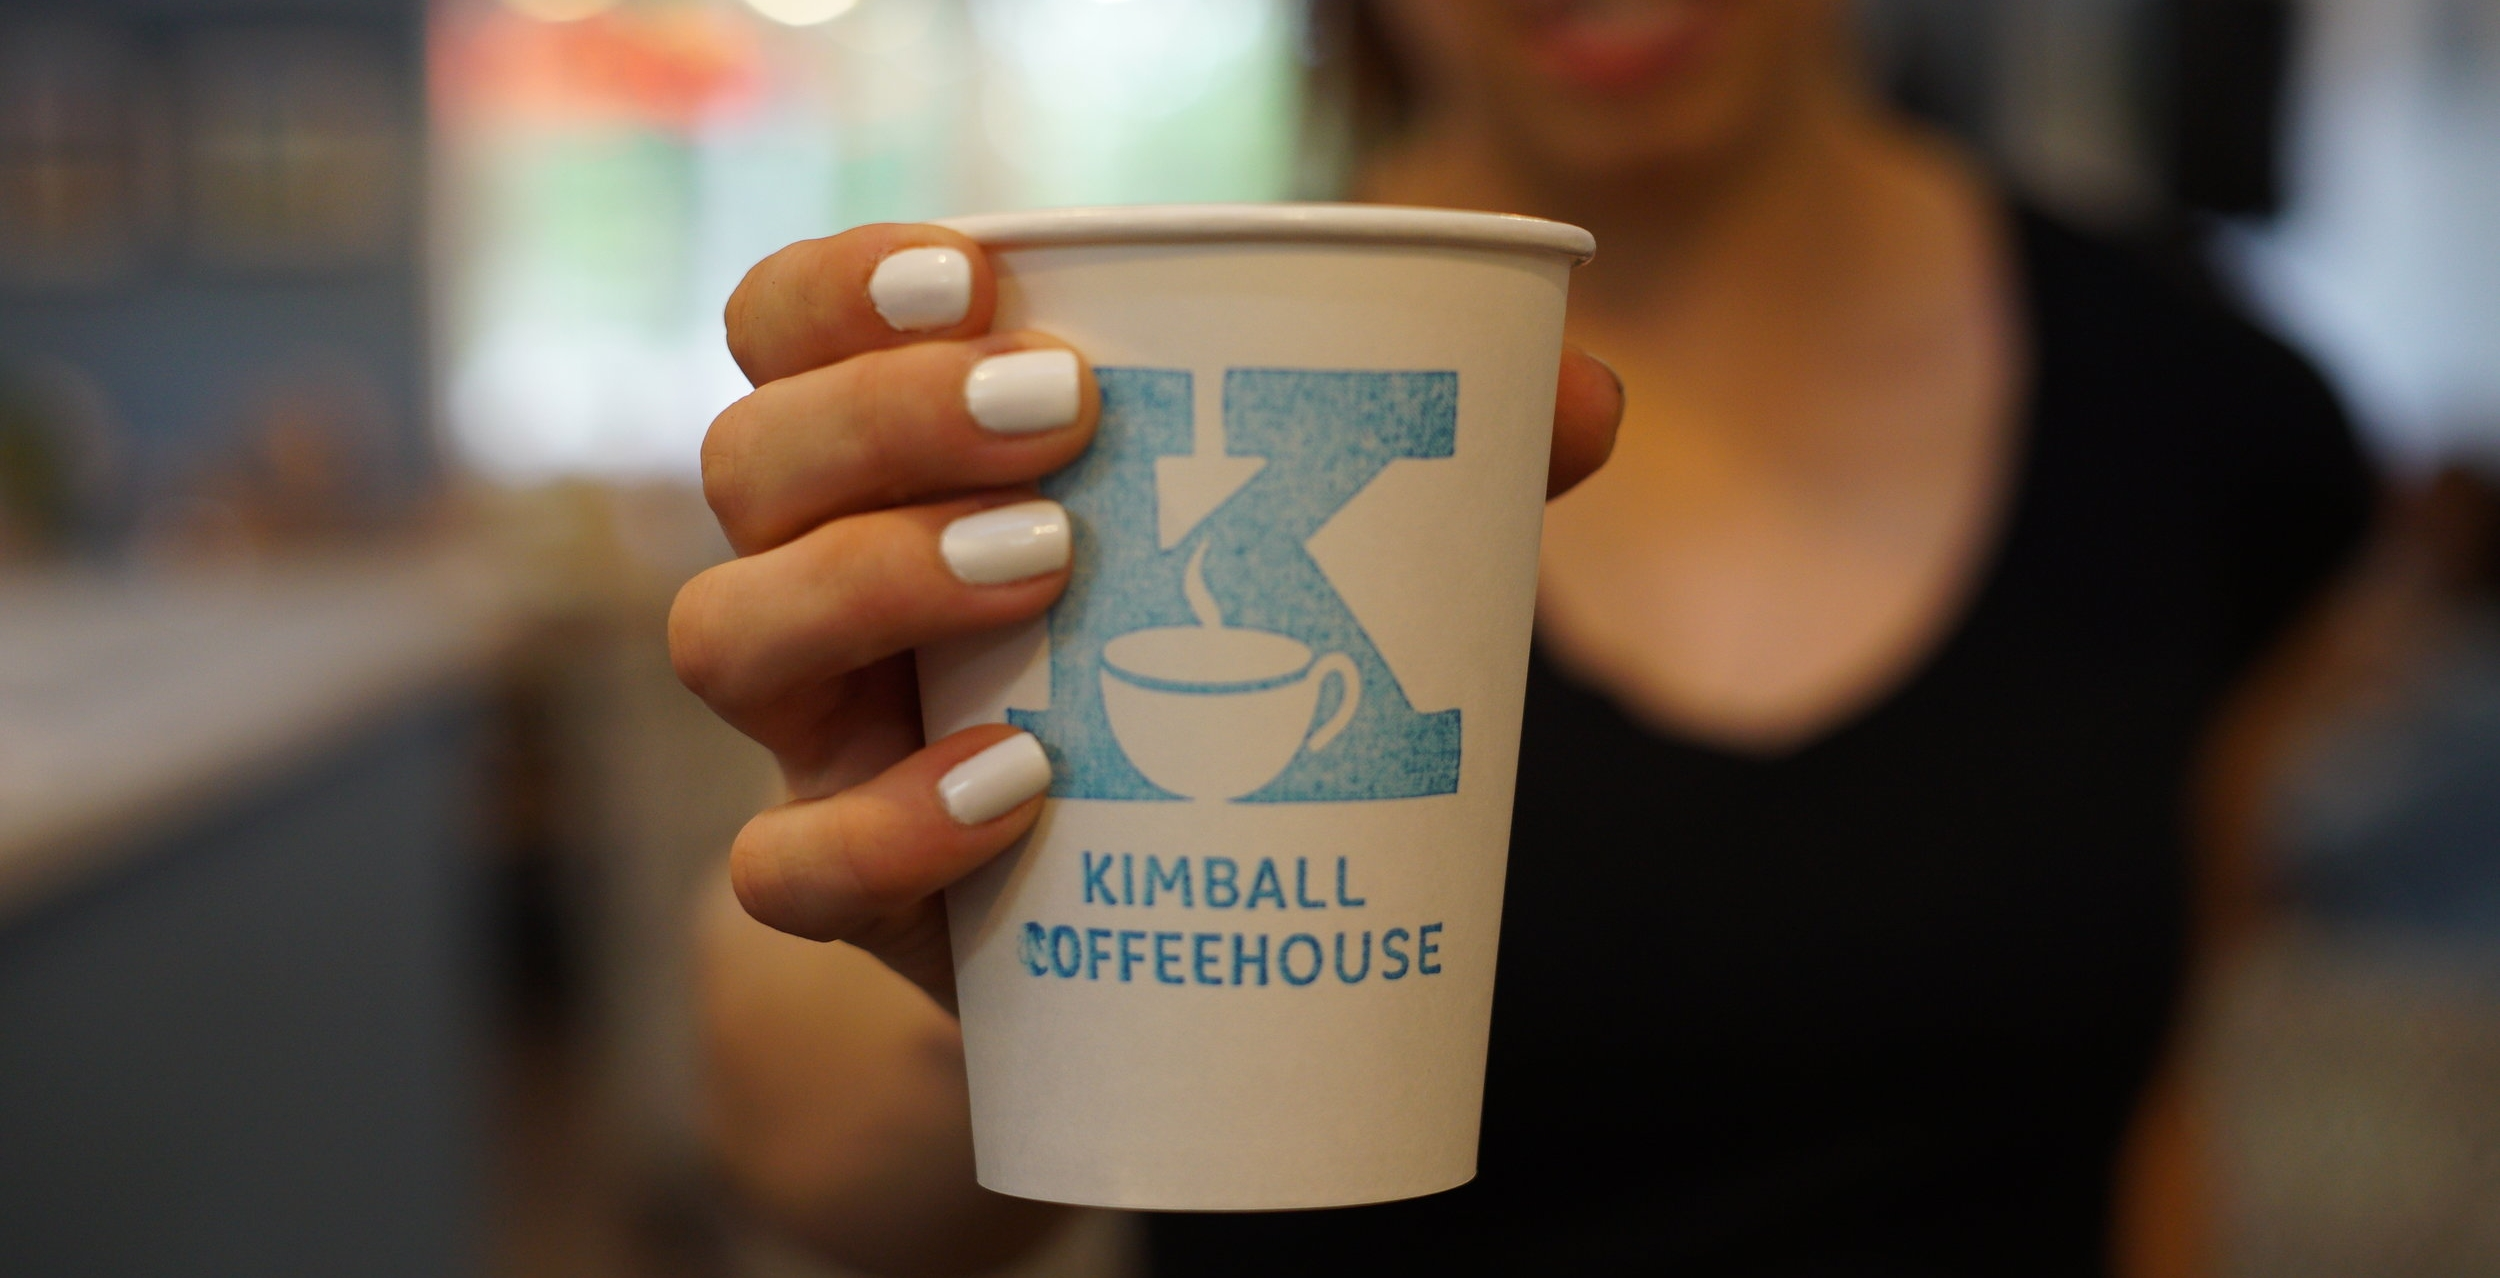 Kimball CoffeeHouse in Gig Harbor   Excellent coffee, sandwiches, food, beer, wine, and live music. Family run, cozy, good.